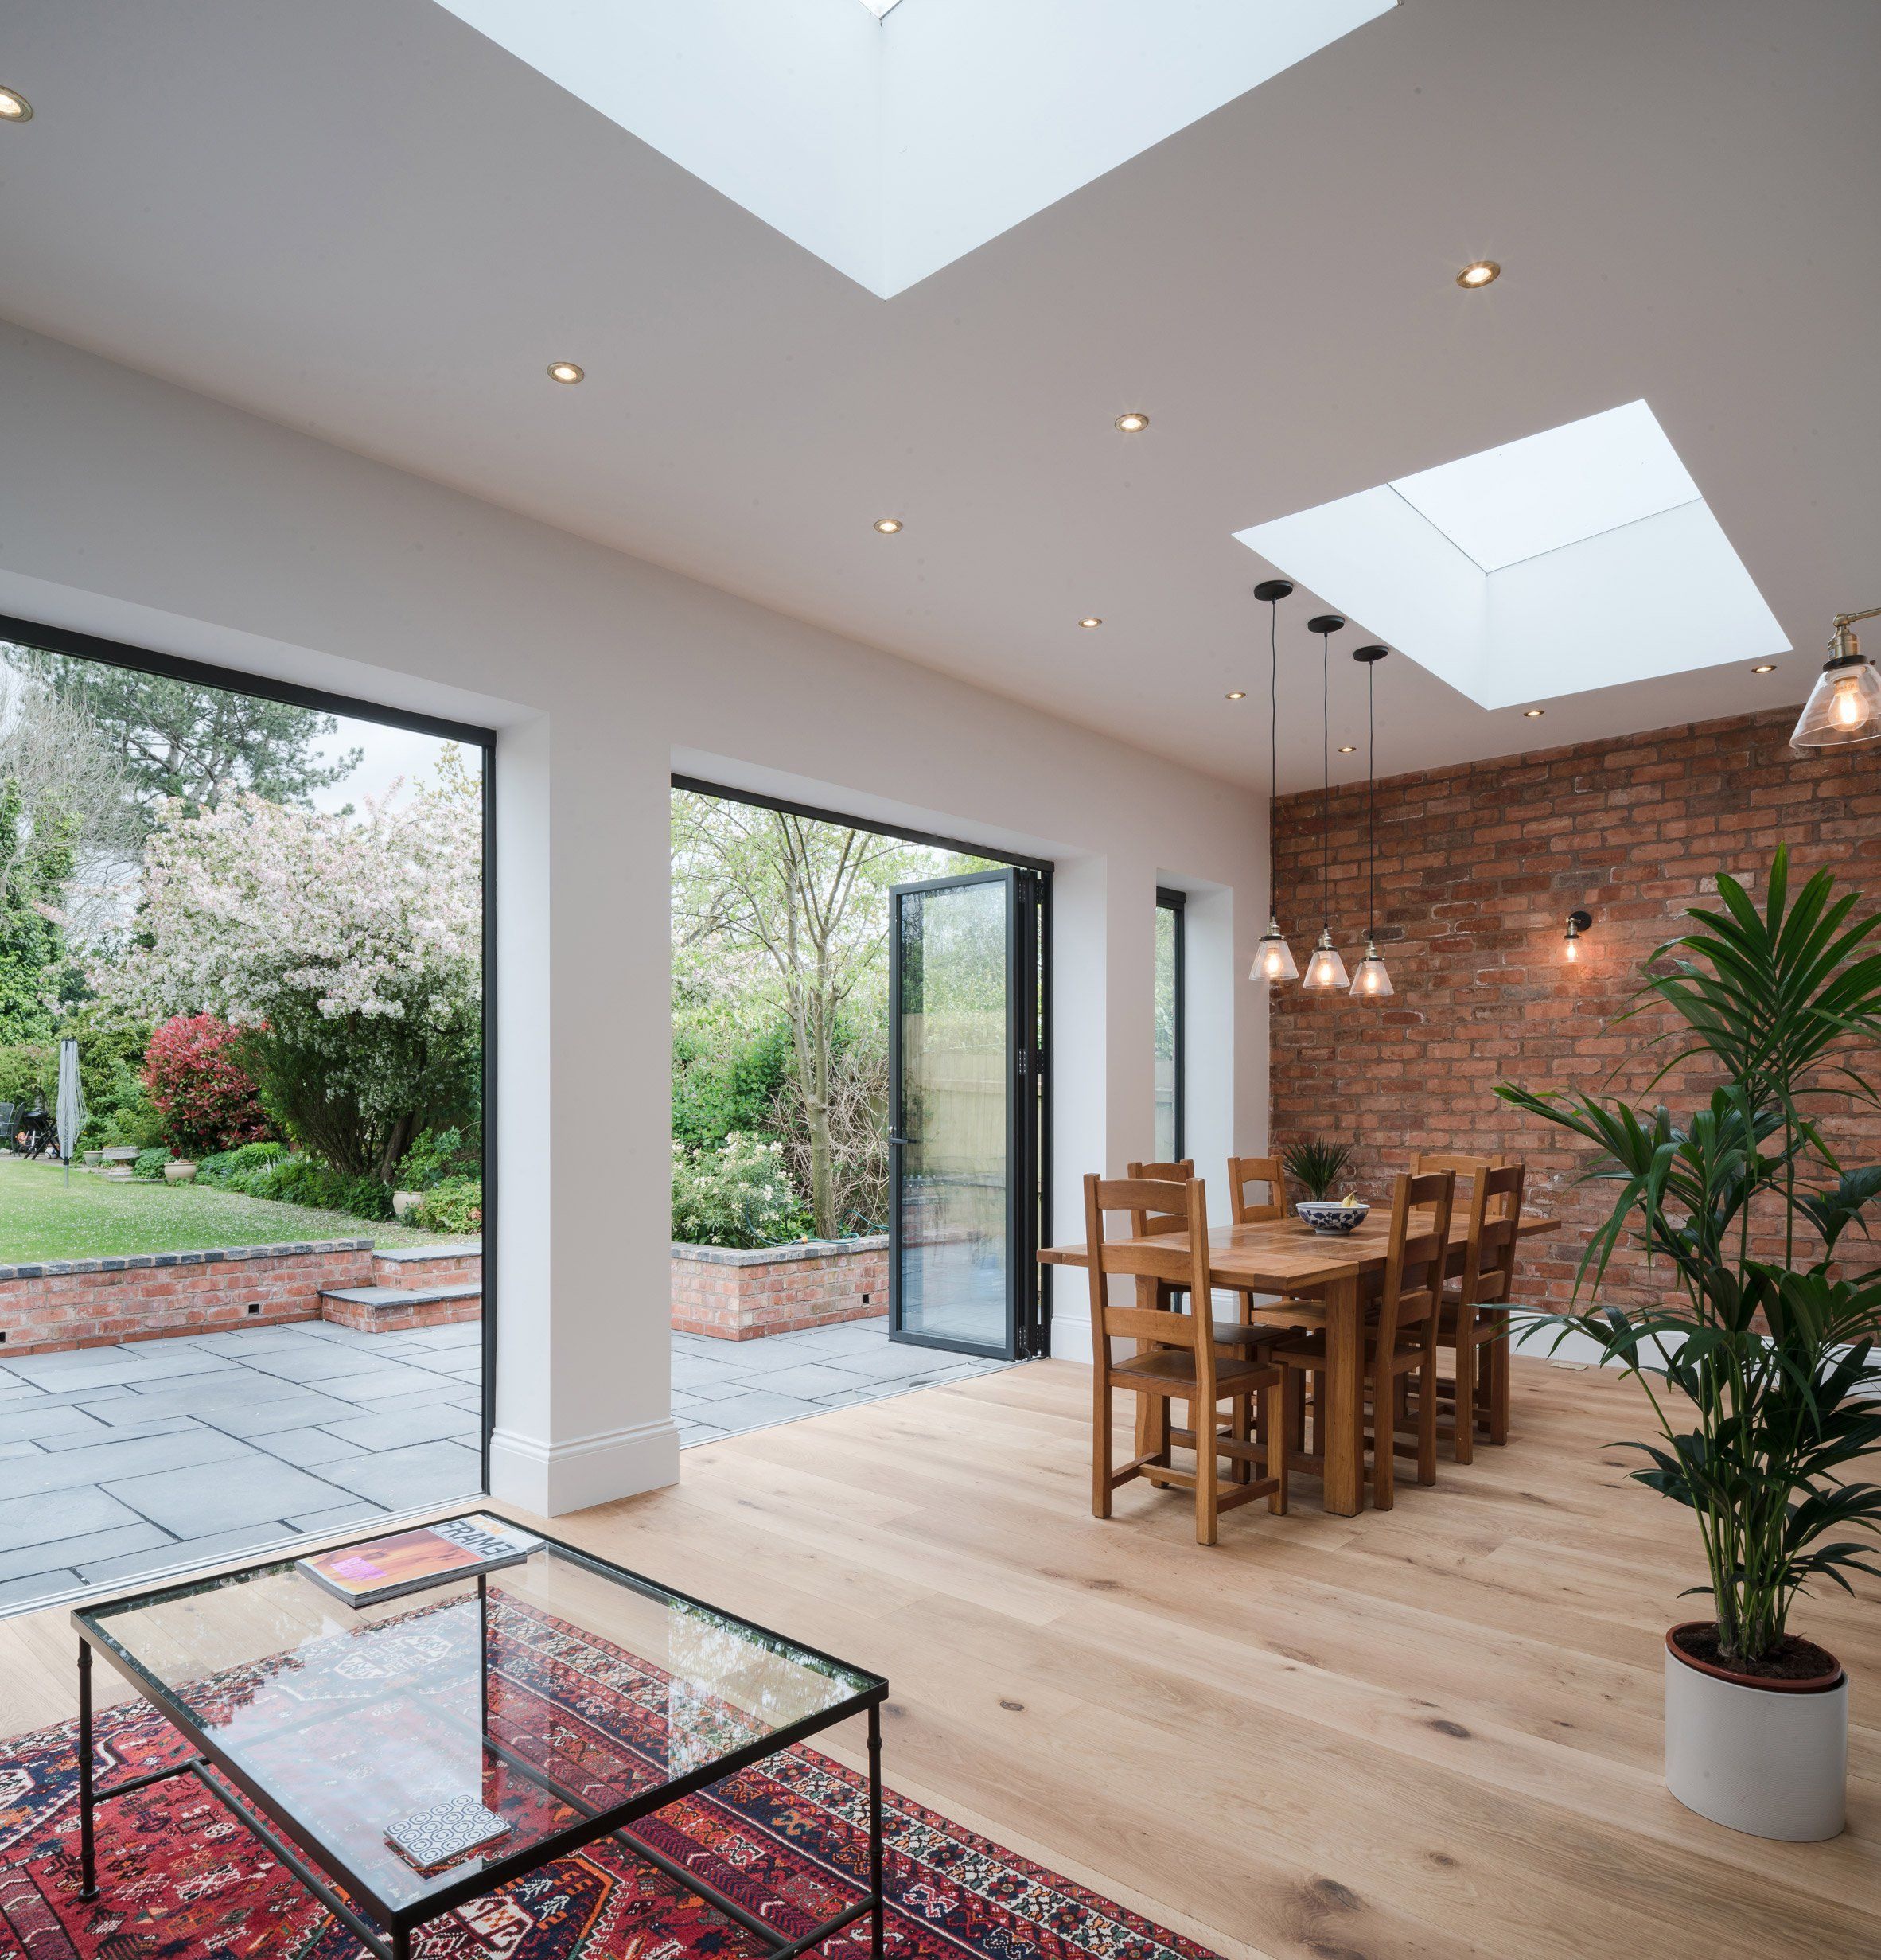 Kitchen Extension Ideas For Bungalows: Choir Singer's House By Intervention Architecture